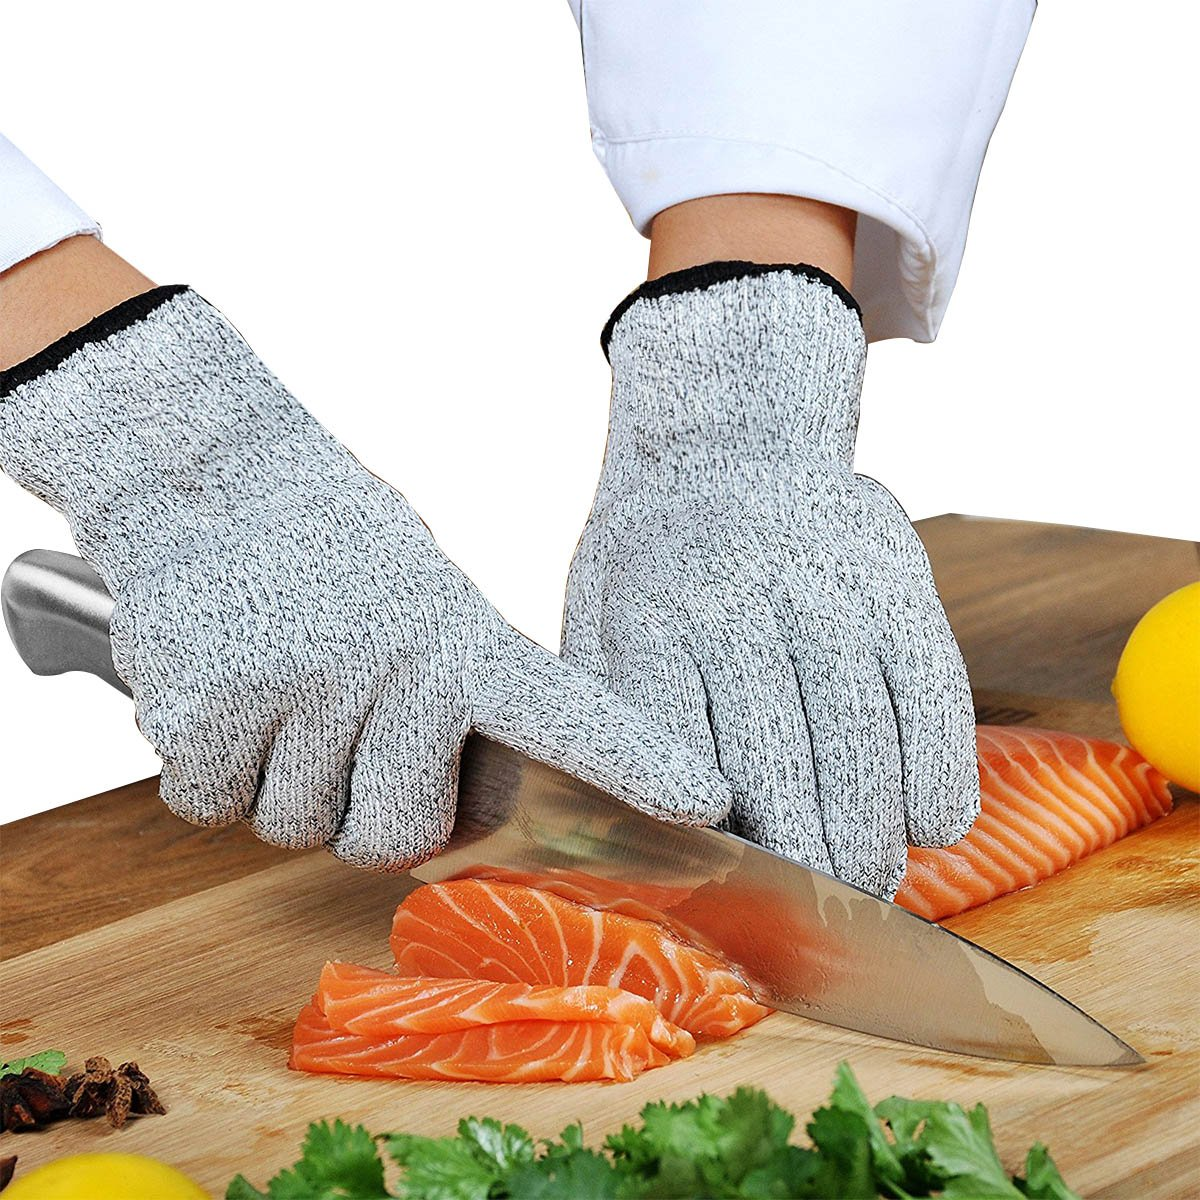 Cut Resistant Gloves - High Performance Level 5 Protection, Food ...